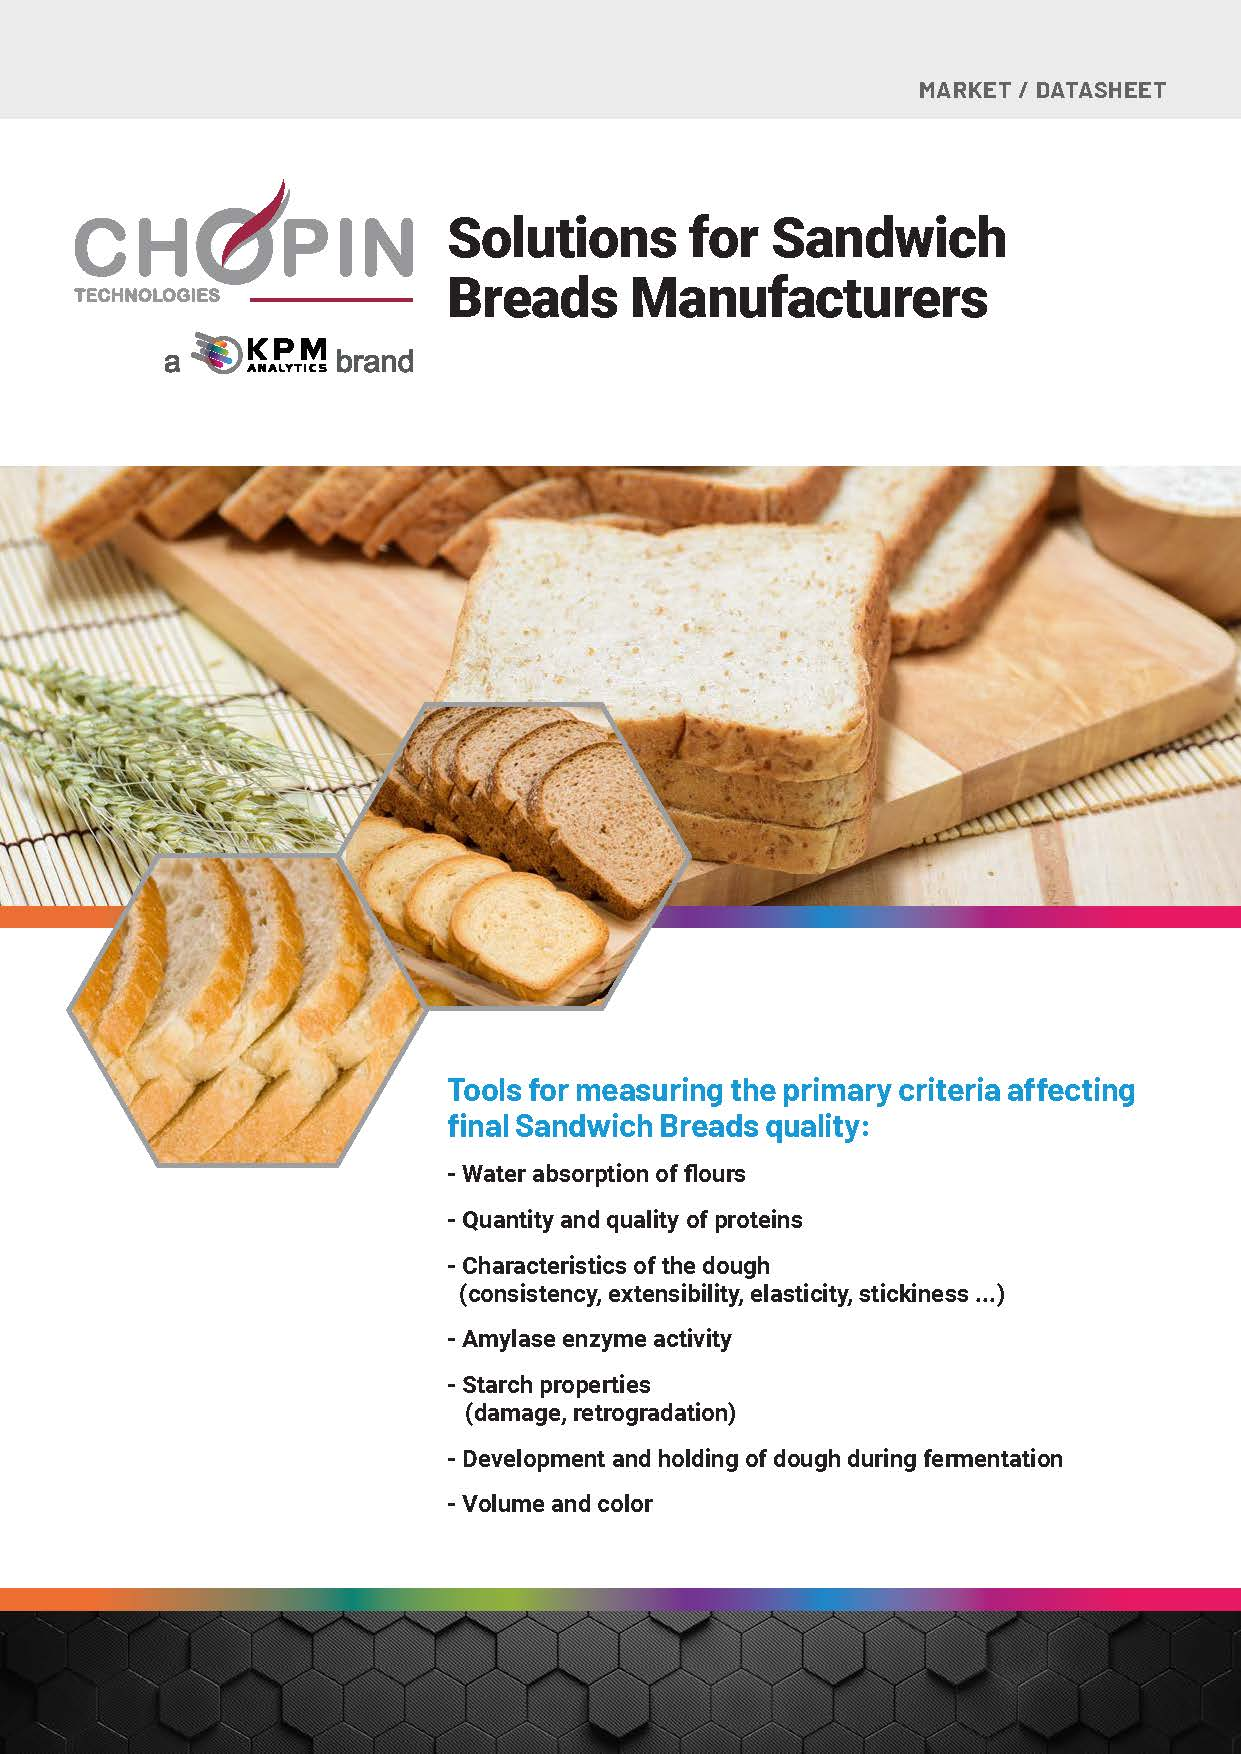 Solutions for Sandwich Bread Manufacturers